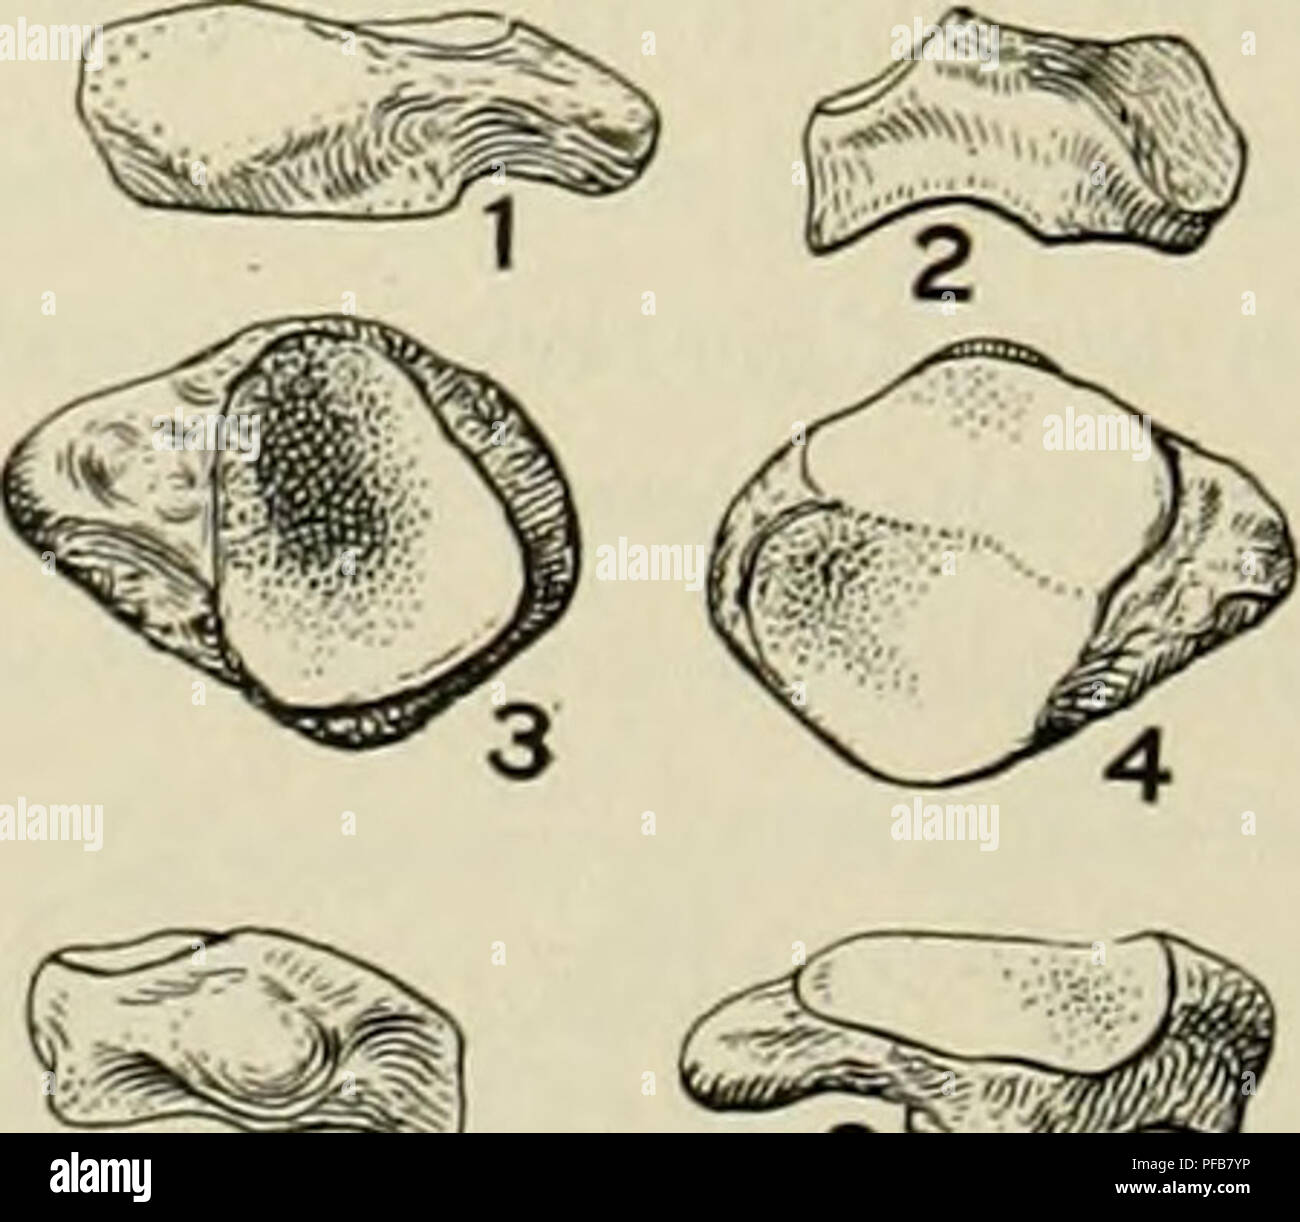 . Description of new carnivores from the Miocene of western Nebraska. Carnivora, Fossil; Paleontology; Paleontology. 236 MEMOIRS OF THE CARNEGIE MUSEUM face of the bone, and furnishes muscular attachment for Mc.V, but does not articu- late with the latter as in the dogs. The facets for ti@$>0m KS mj the ulna and pisiform on the proximal face are sub- equal in size and are separated by a prominent ridge, J, the former being more concave antero-posteriorly sp Mr than the latter. In the dogs the facet for the ulna is 4 different, being more sinuously curved, with an antero- posterior cavity o - Stock Image